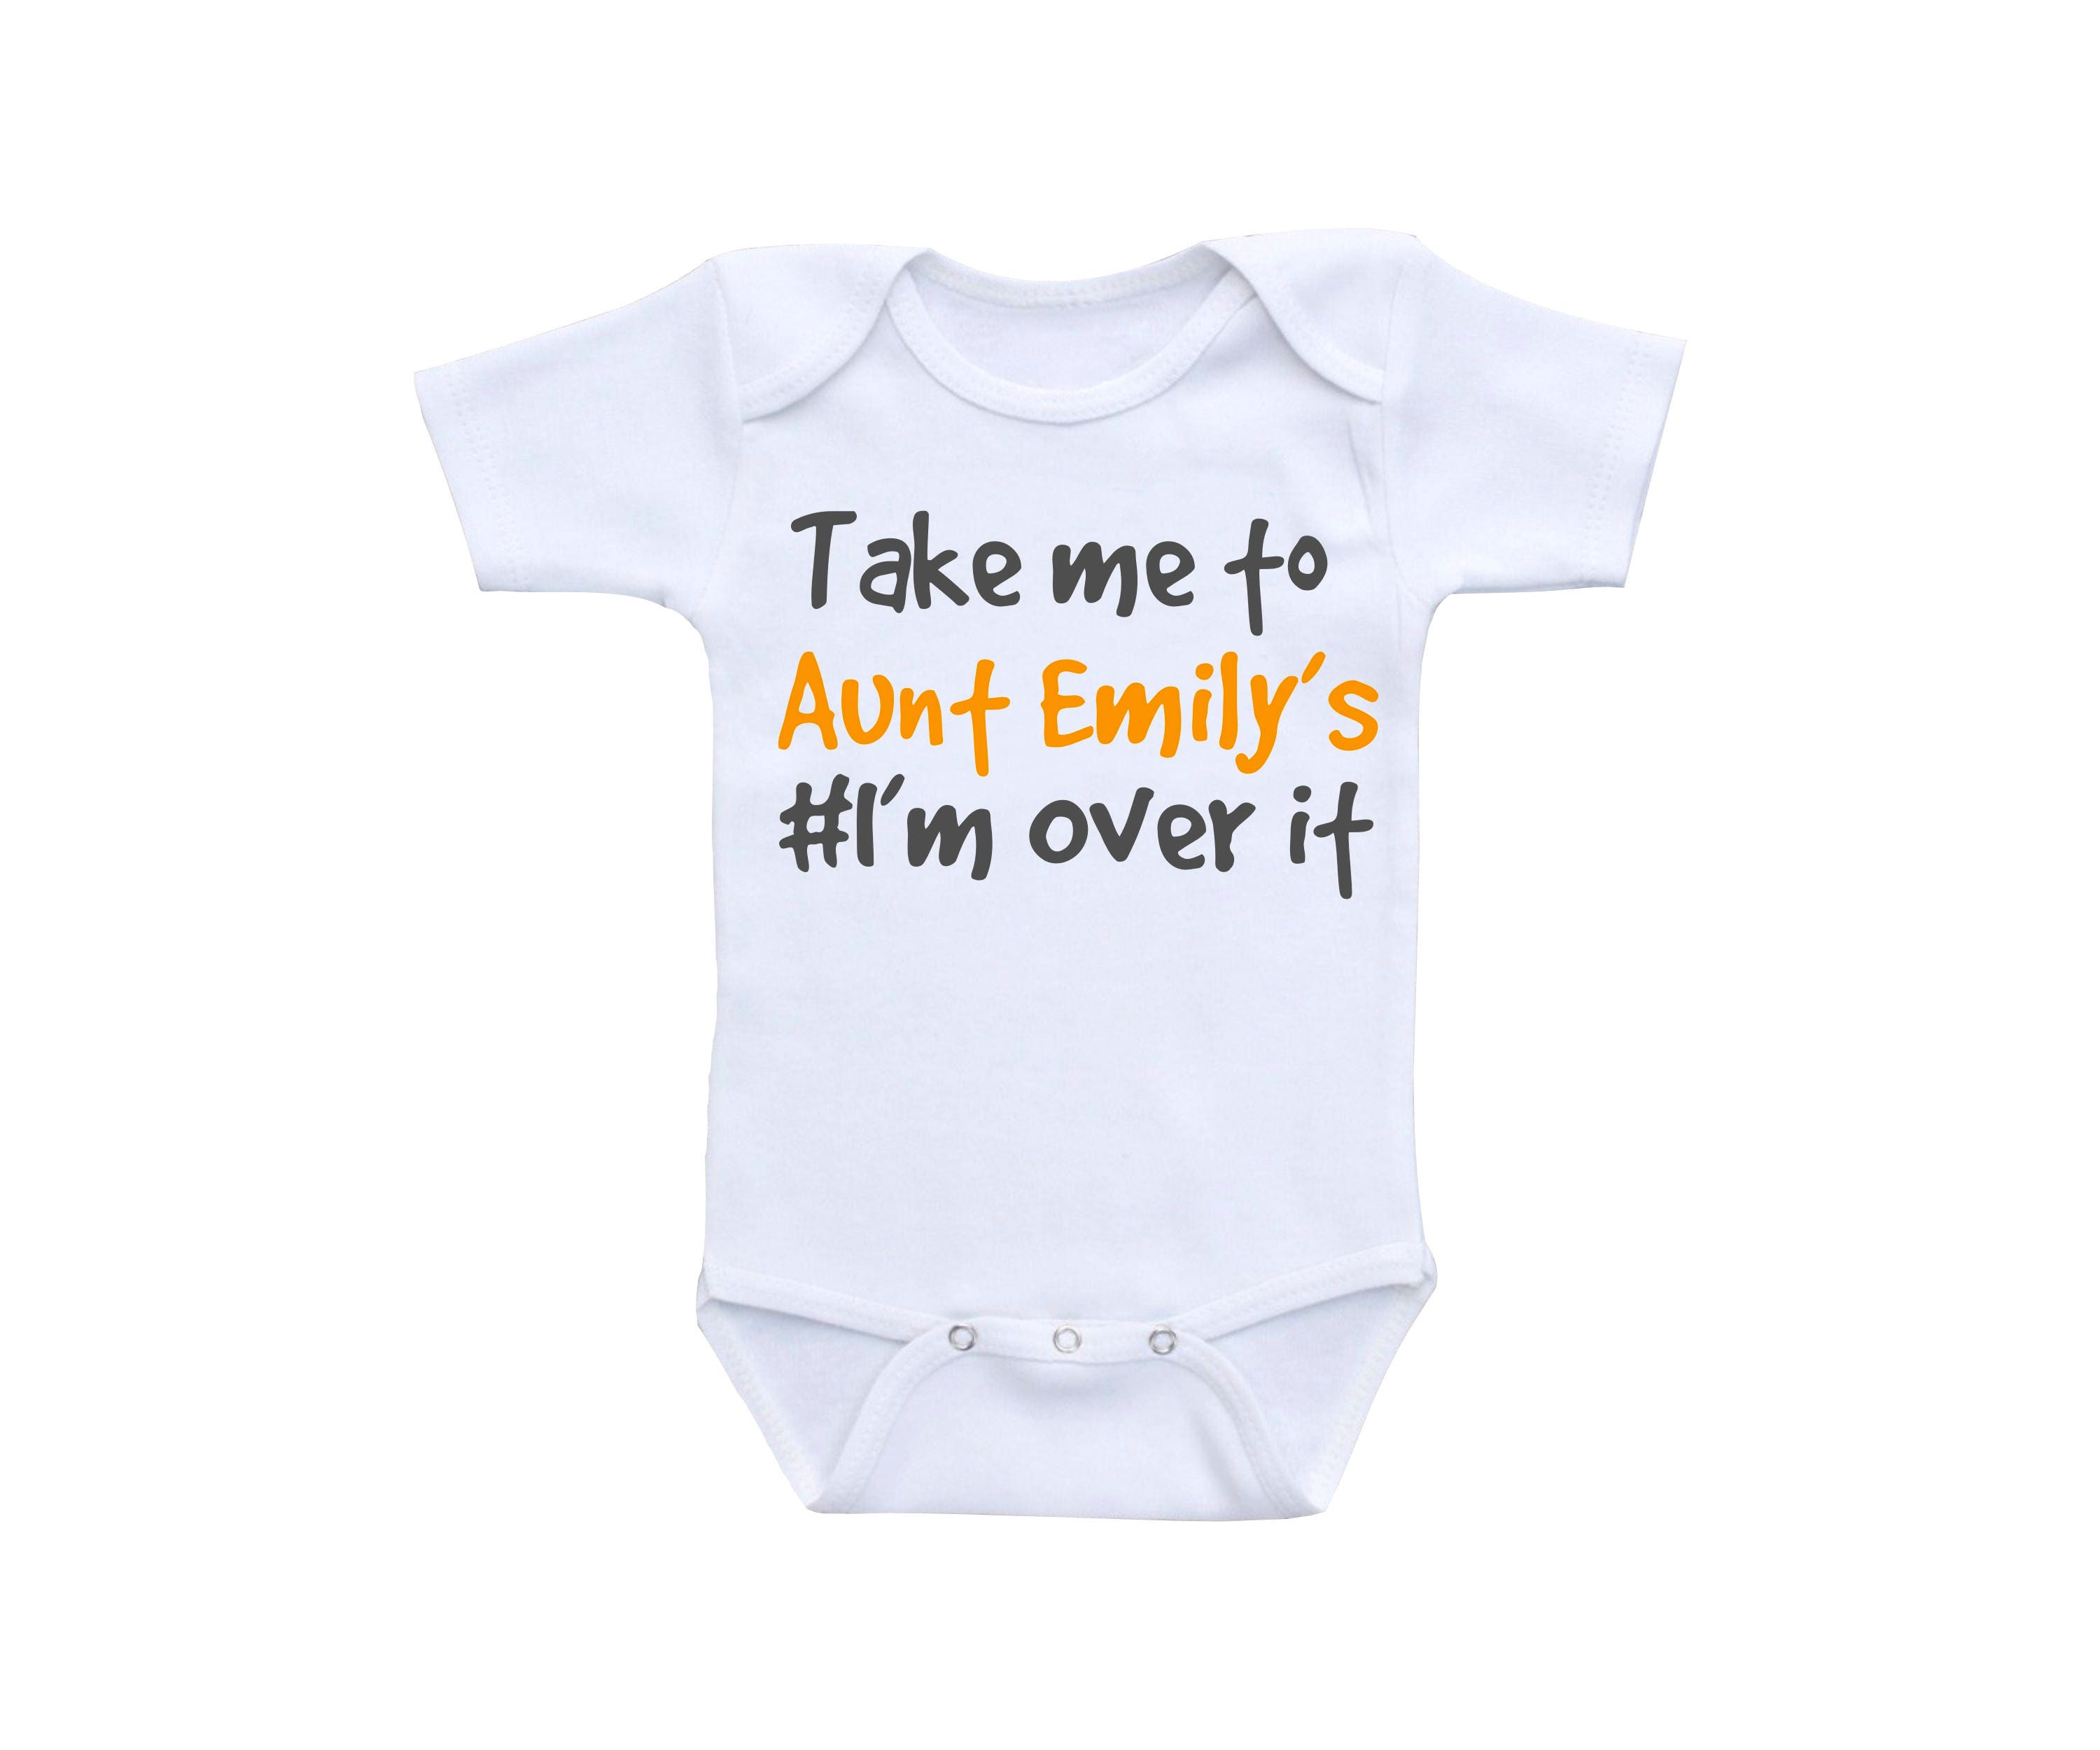 Funny Baby Clothes or Gerber esie Funny Baby esies Aunt